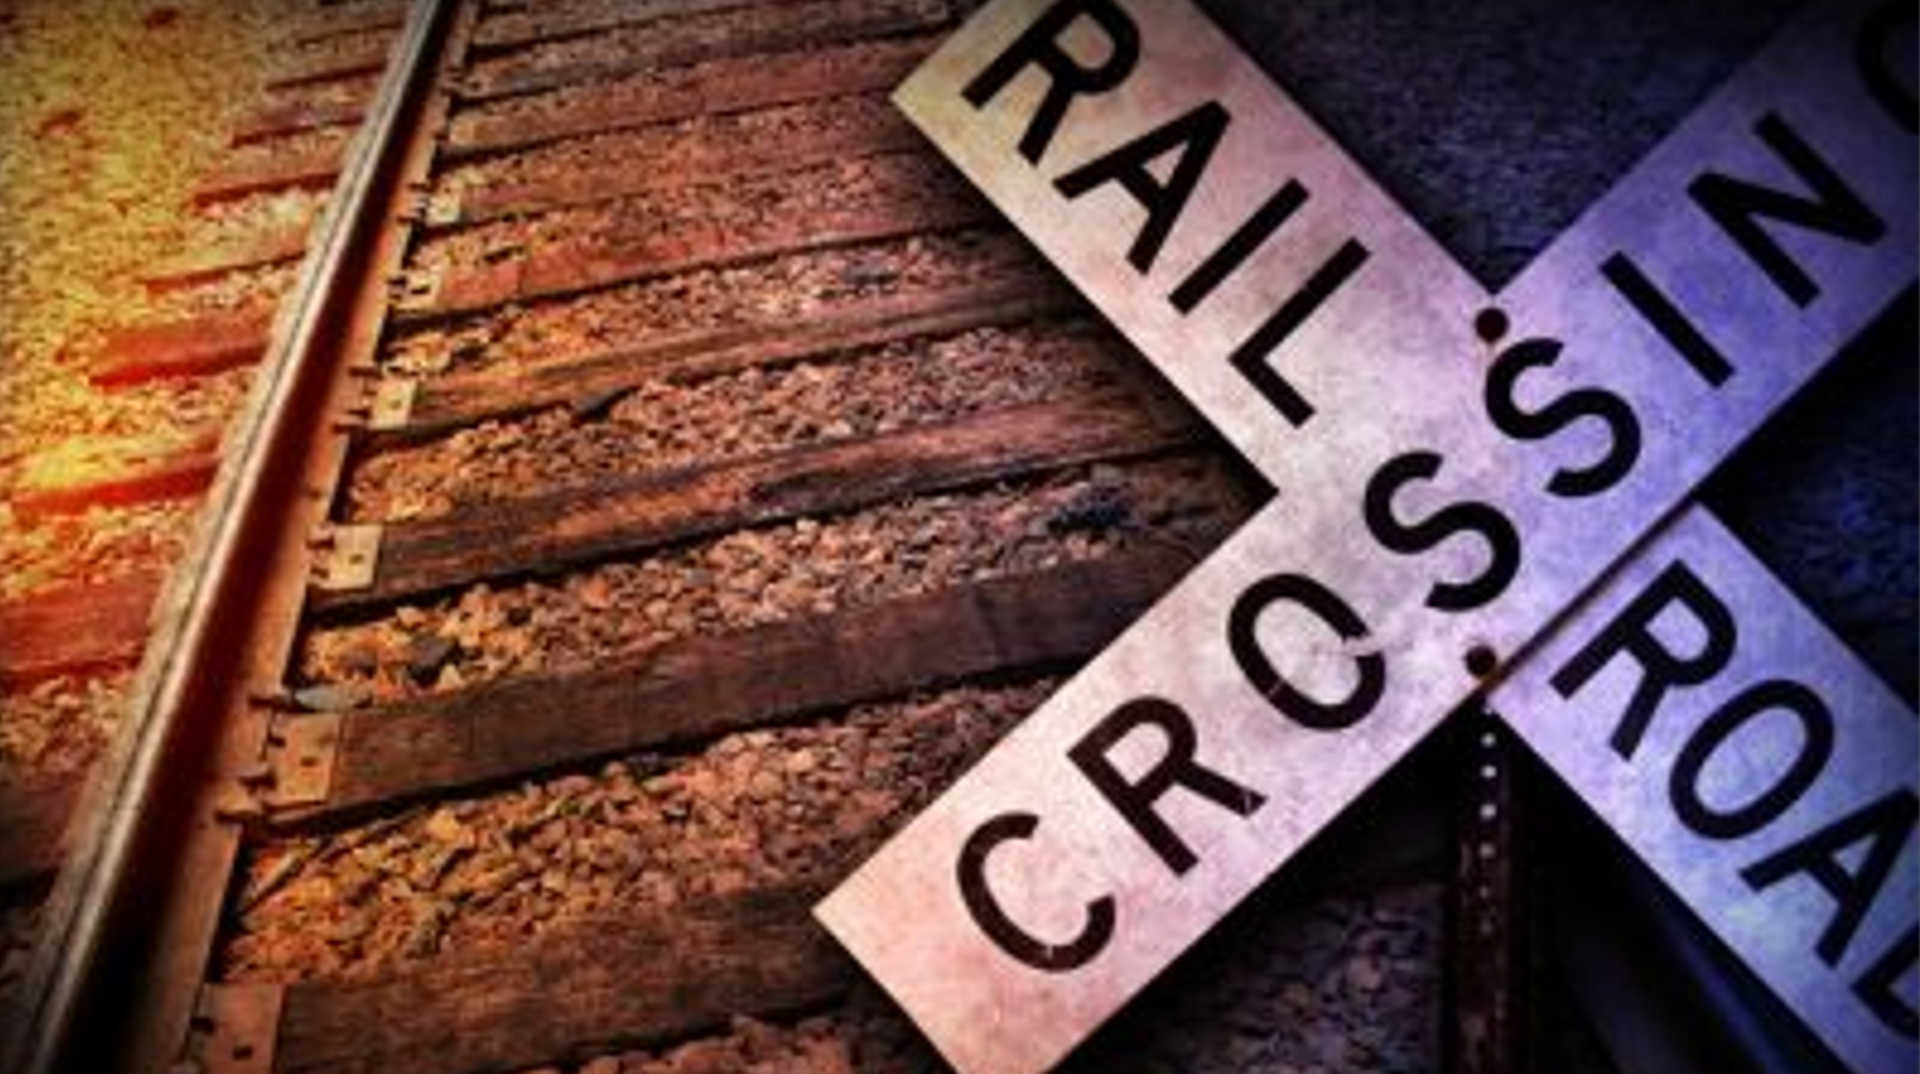 Woman hit by train may have been distracted by cell phone - KOBI-TV